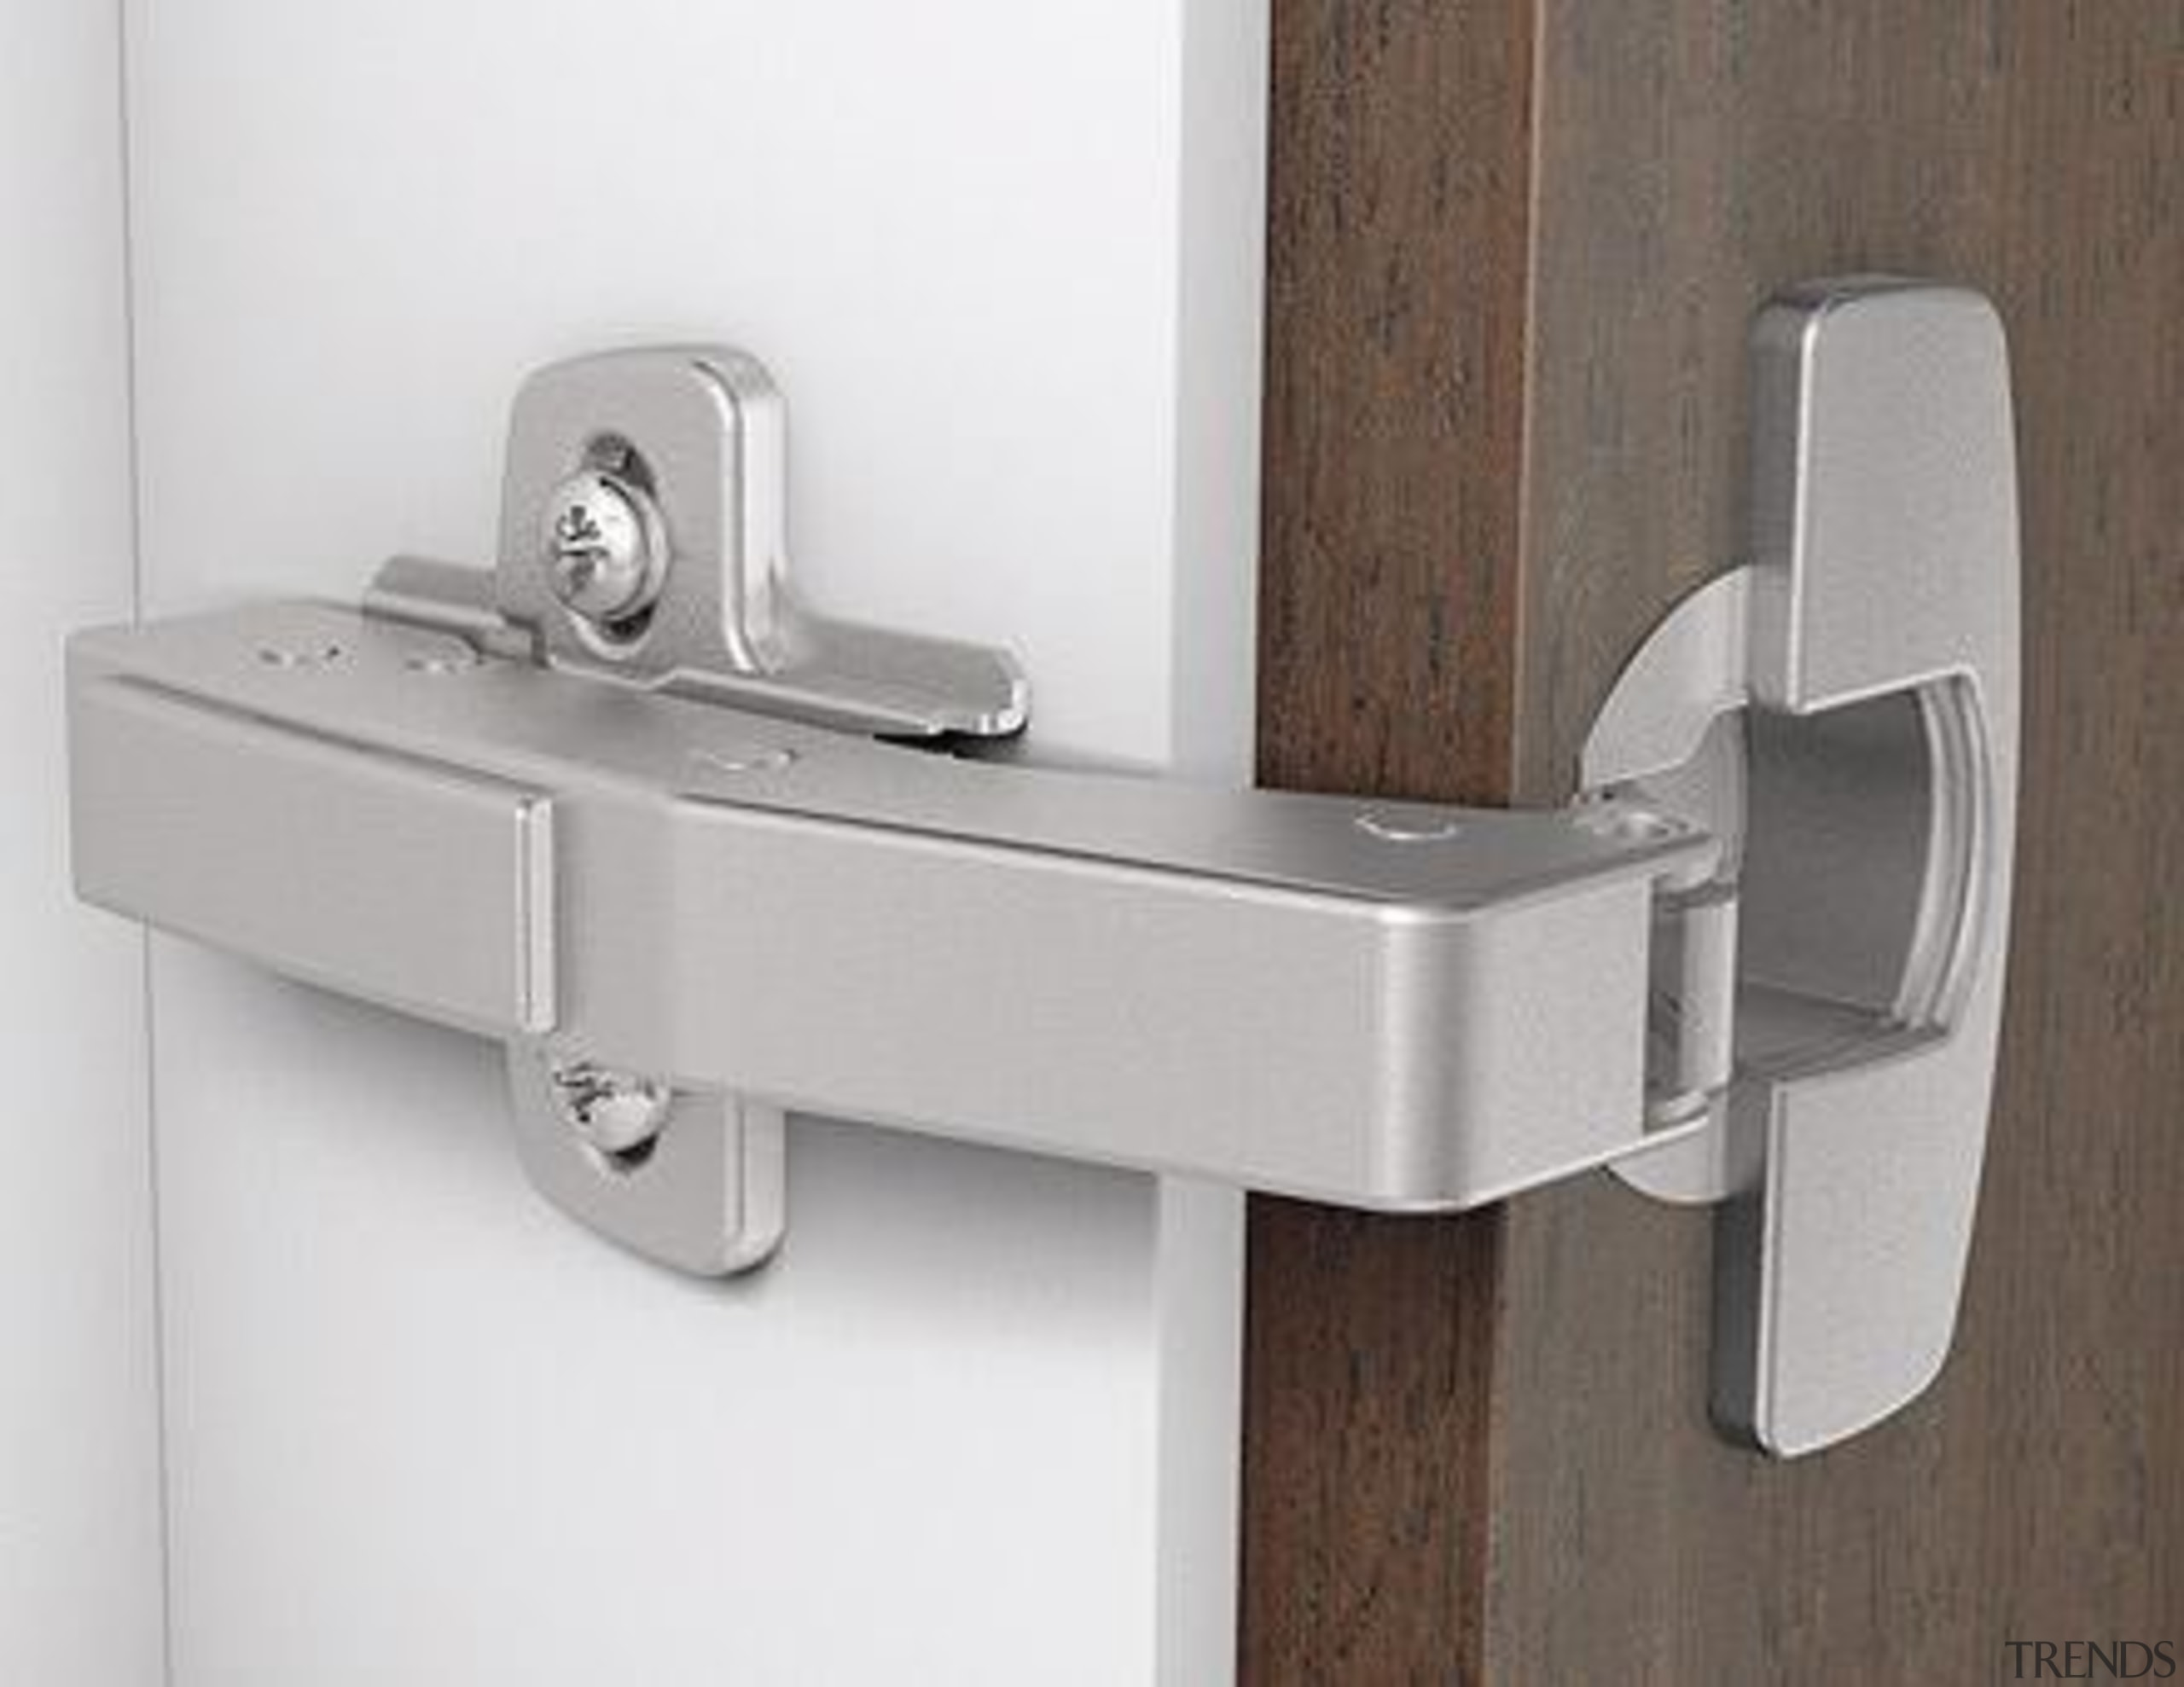 The sensys hinge family includes products for all hardware accessory, hinge, lock, product, product design, tap, gray, white